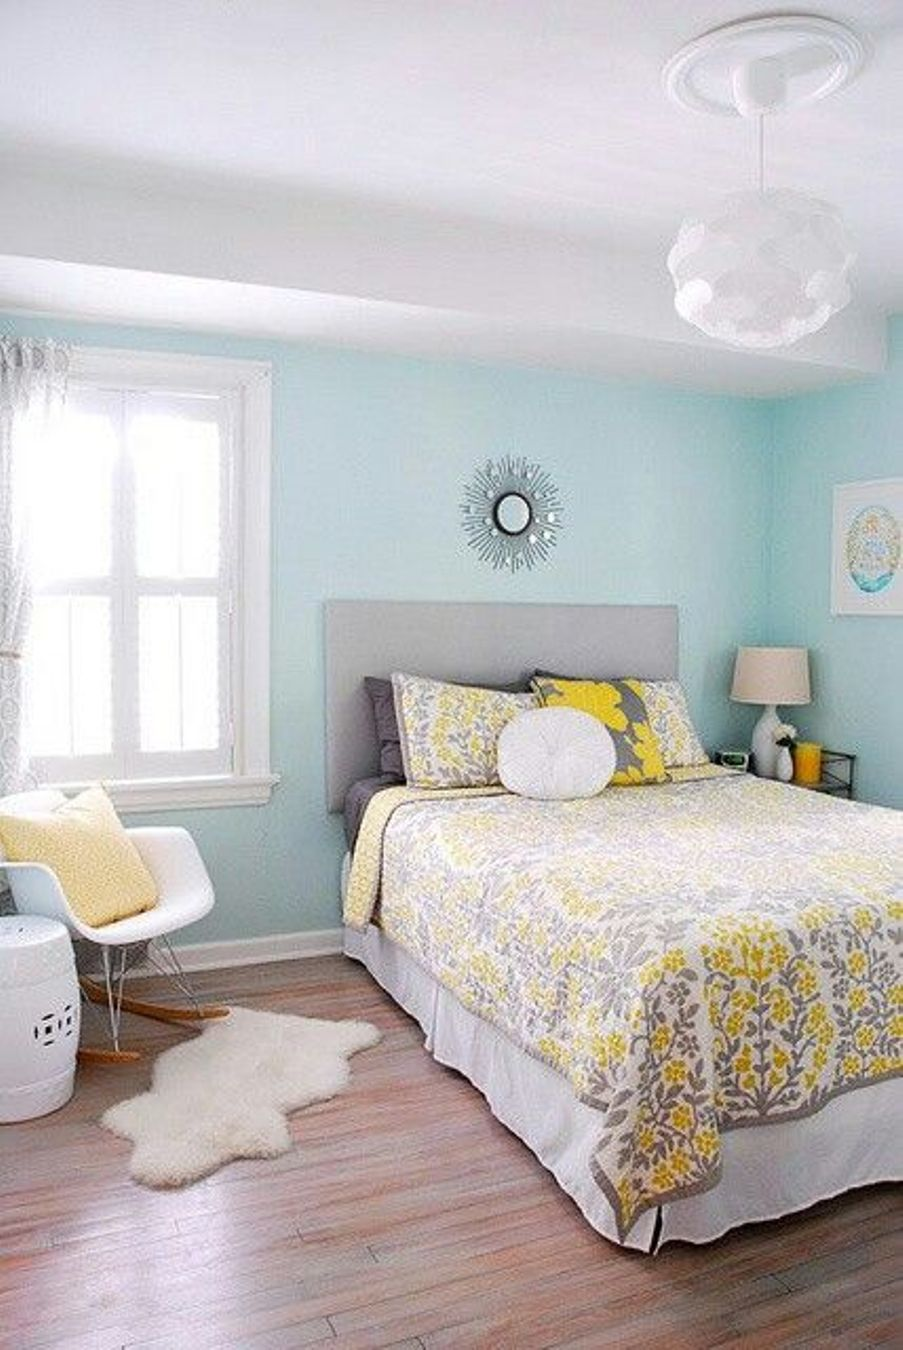 Light Blue Best Paint Colors For Small Room With Glass Window And White  Ceiling And Wooden